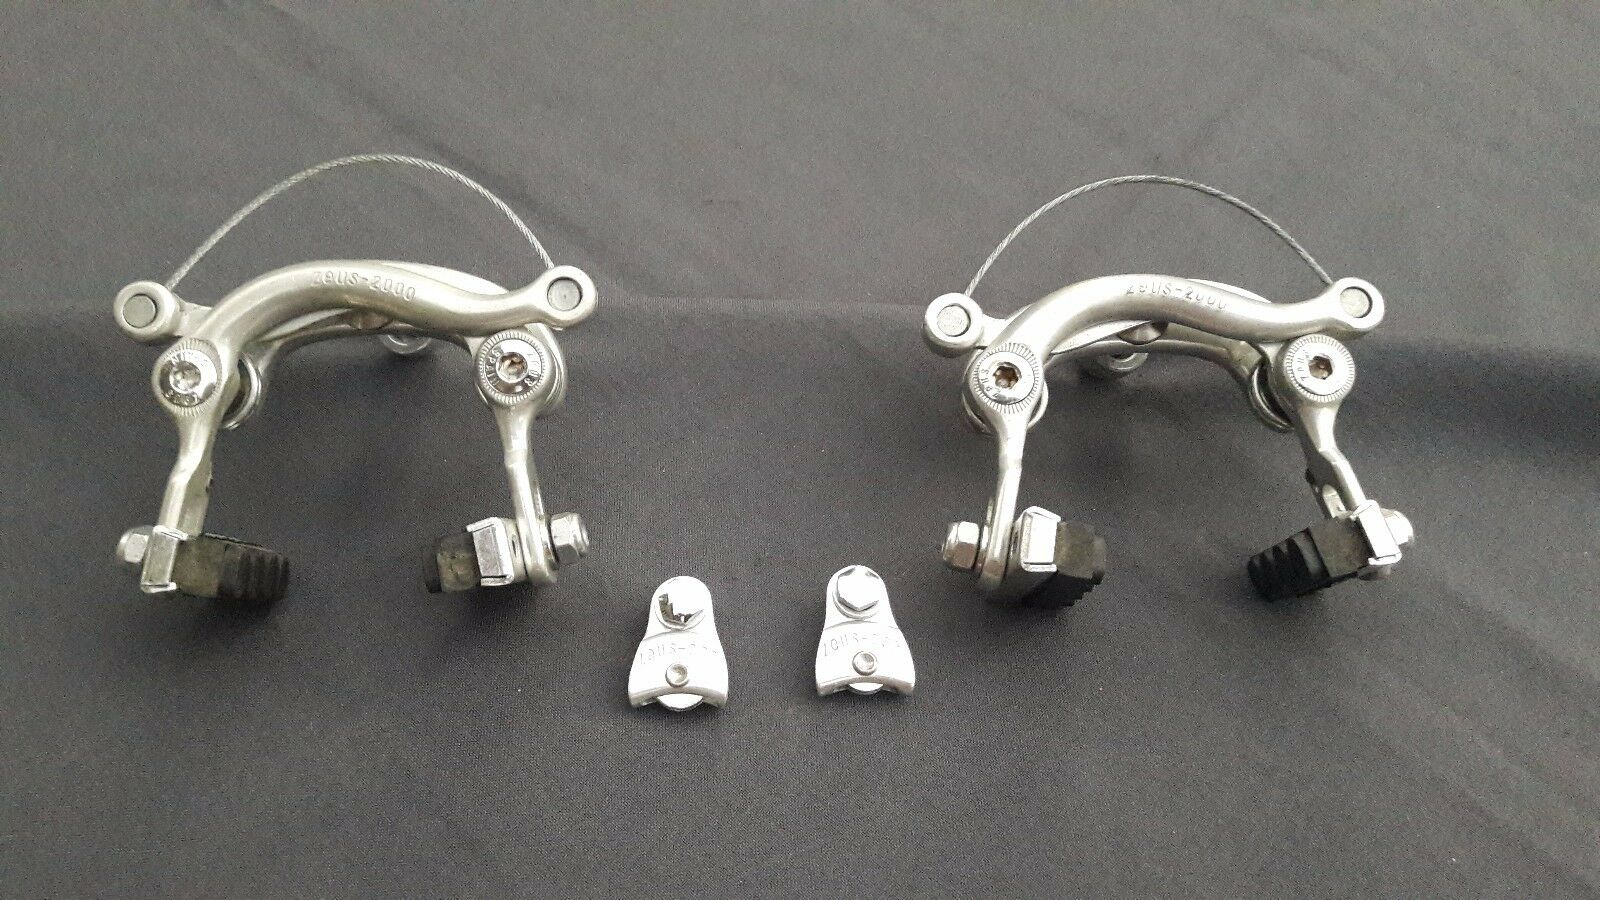 Zeus 2000 - Caliper Set - Bike - Front and  rear - Traditional nut style Vintage  welcome to buy